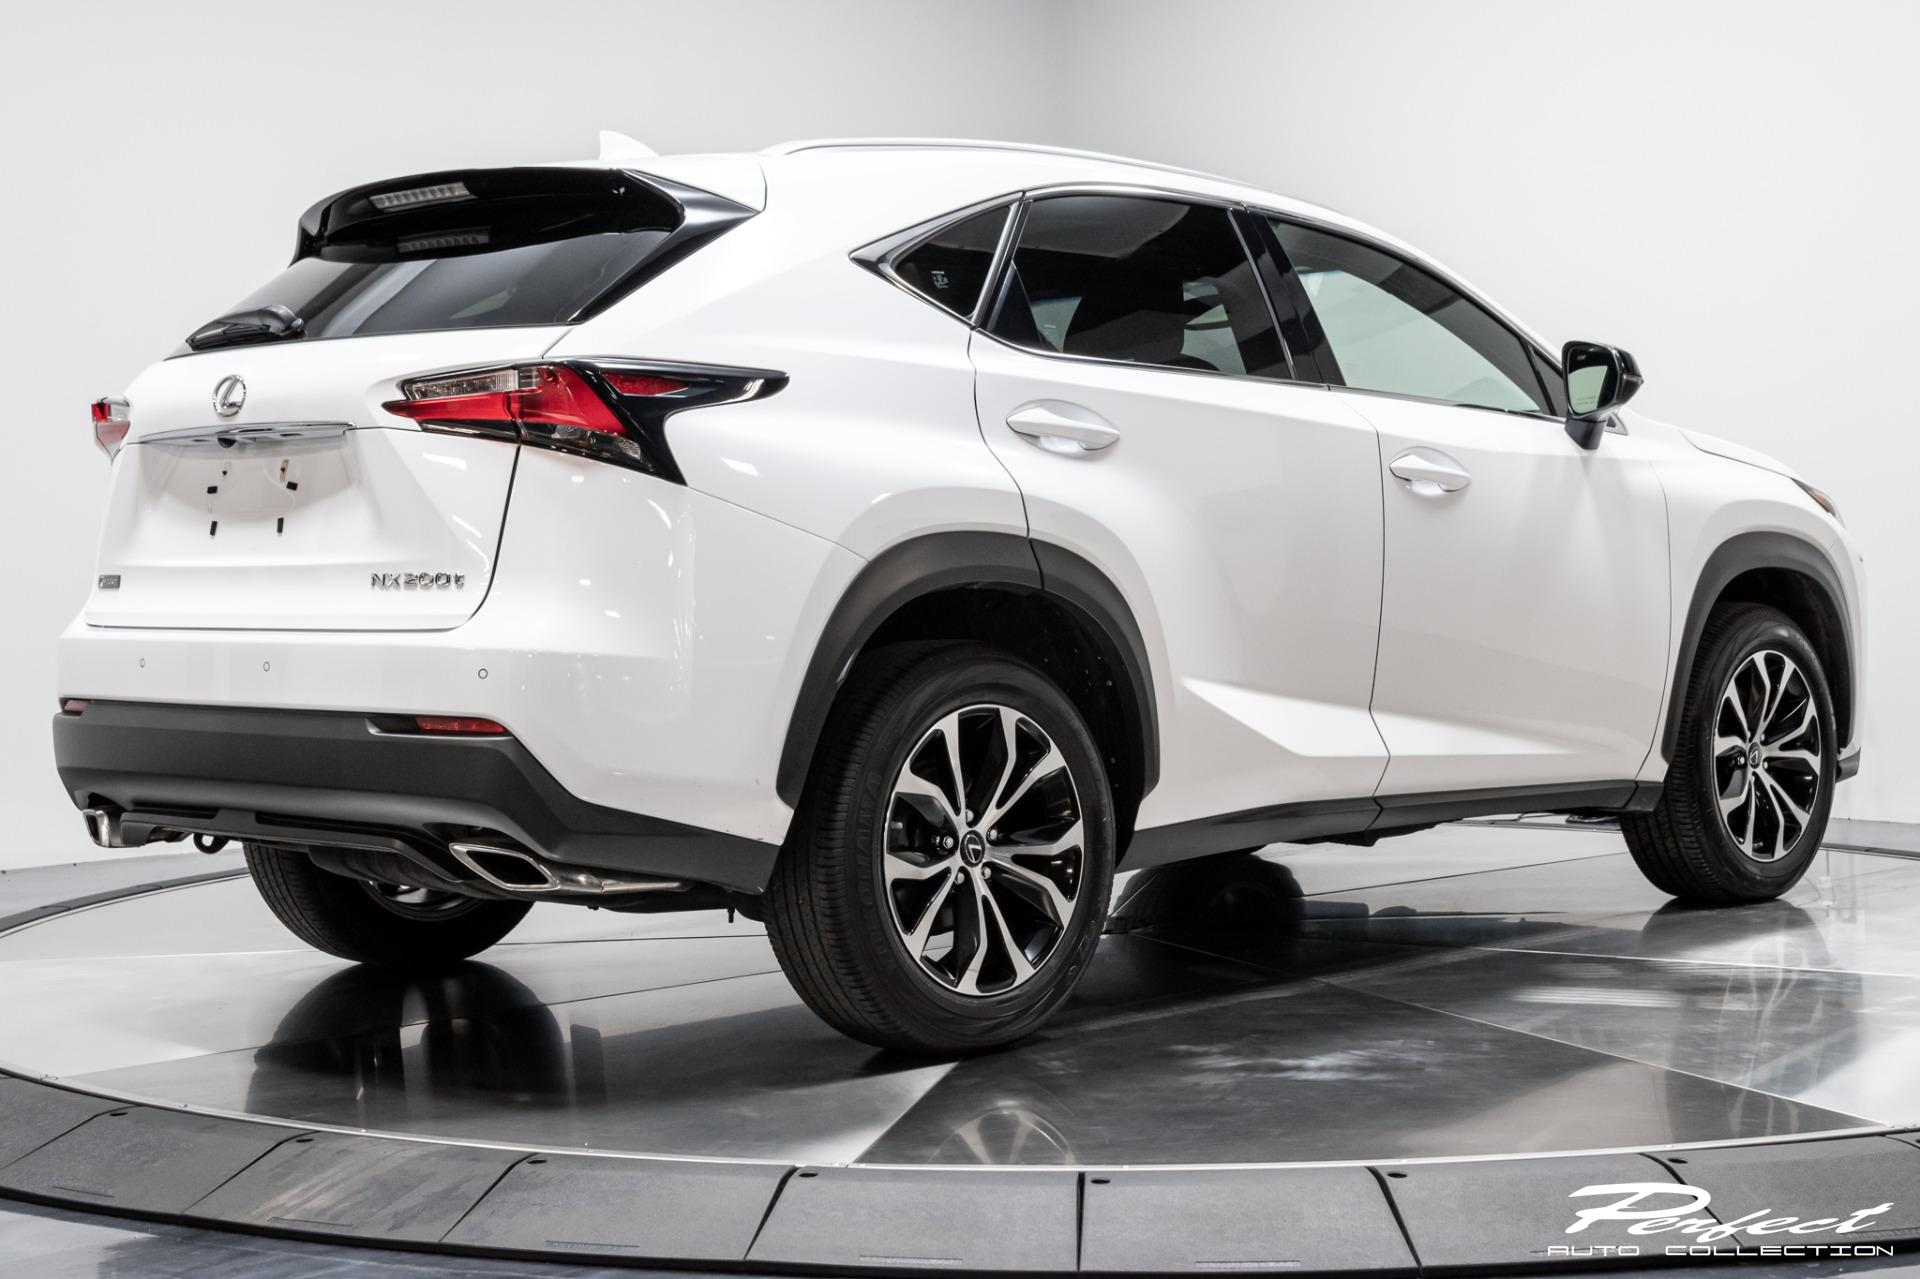 Used 2016 Lexus NX 200t F SPORT for sale Sold at Perfect Auto Collection in Akron OH 44310 4